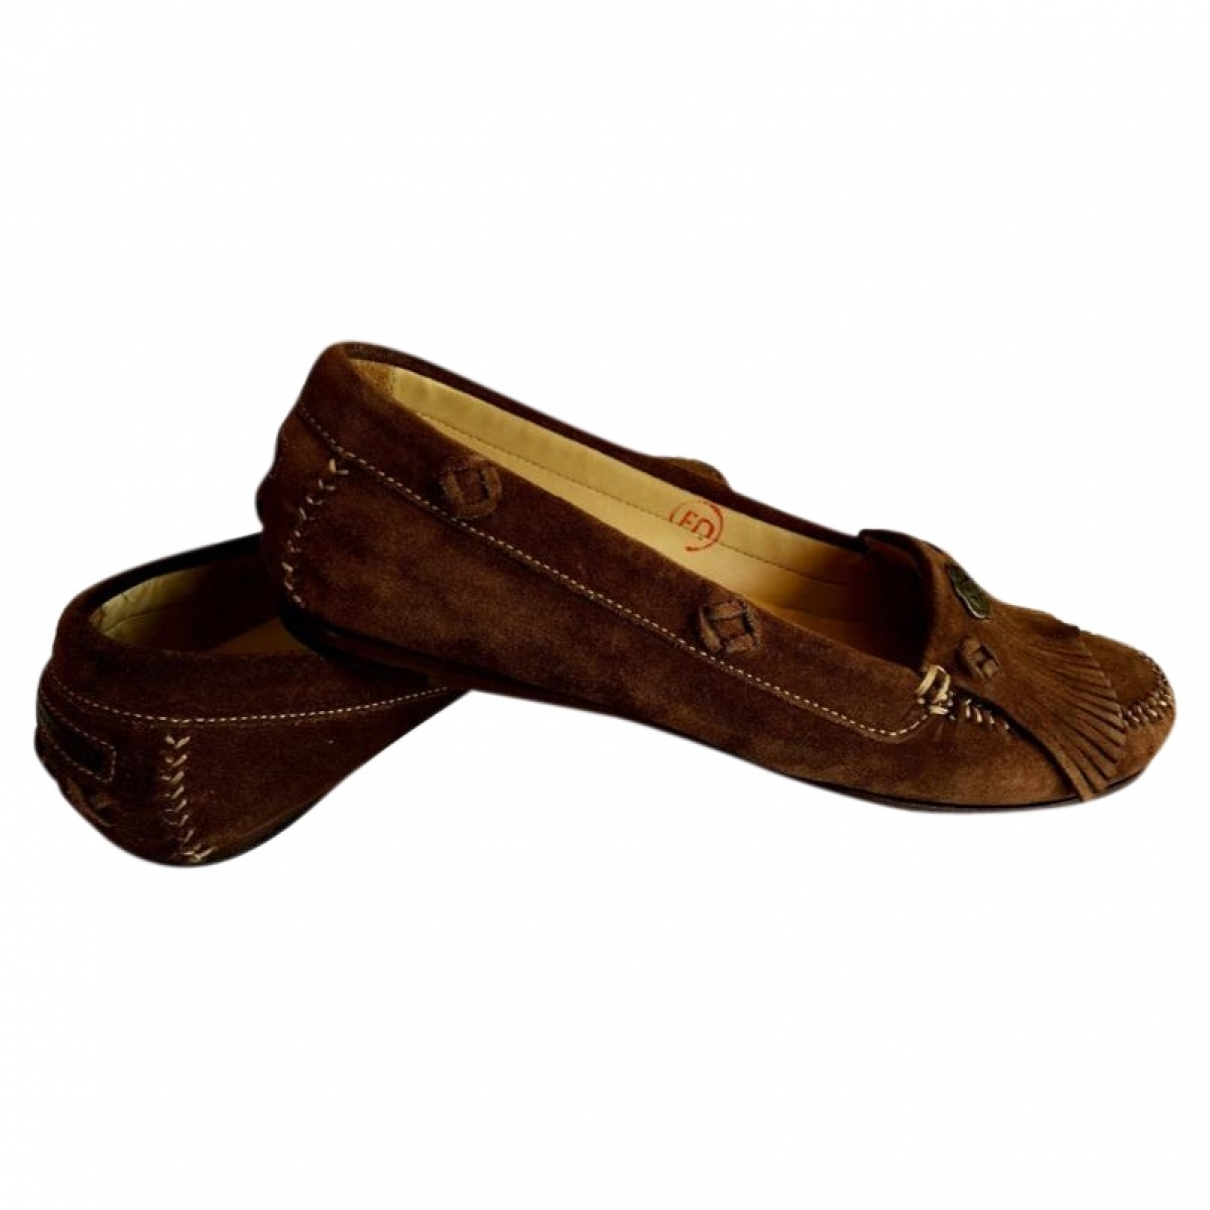 Non Signé / Unsigned Hippie Chic Brown Suede Flats for Women 37 EU